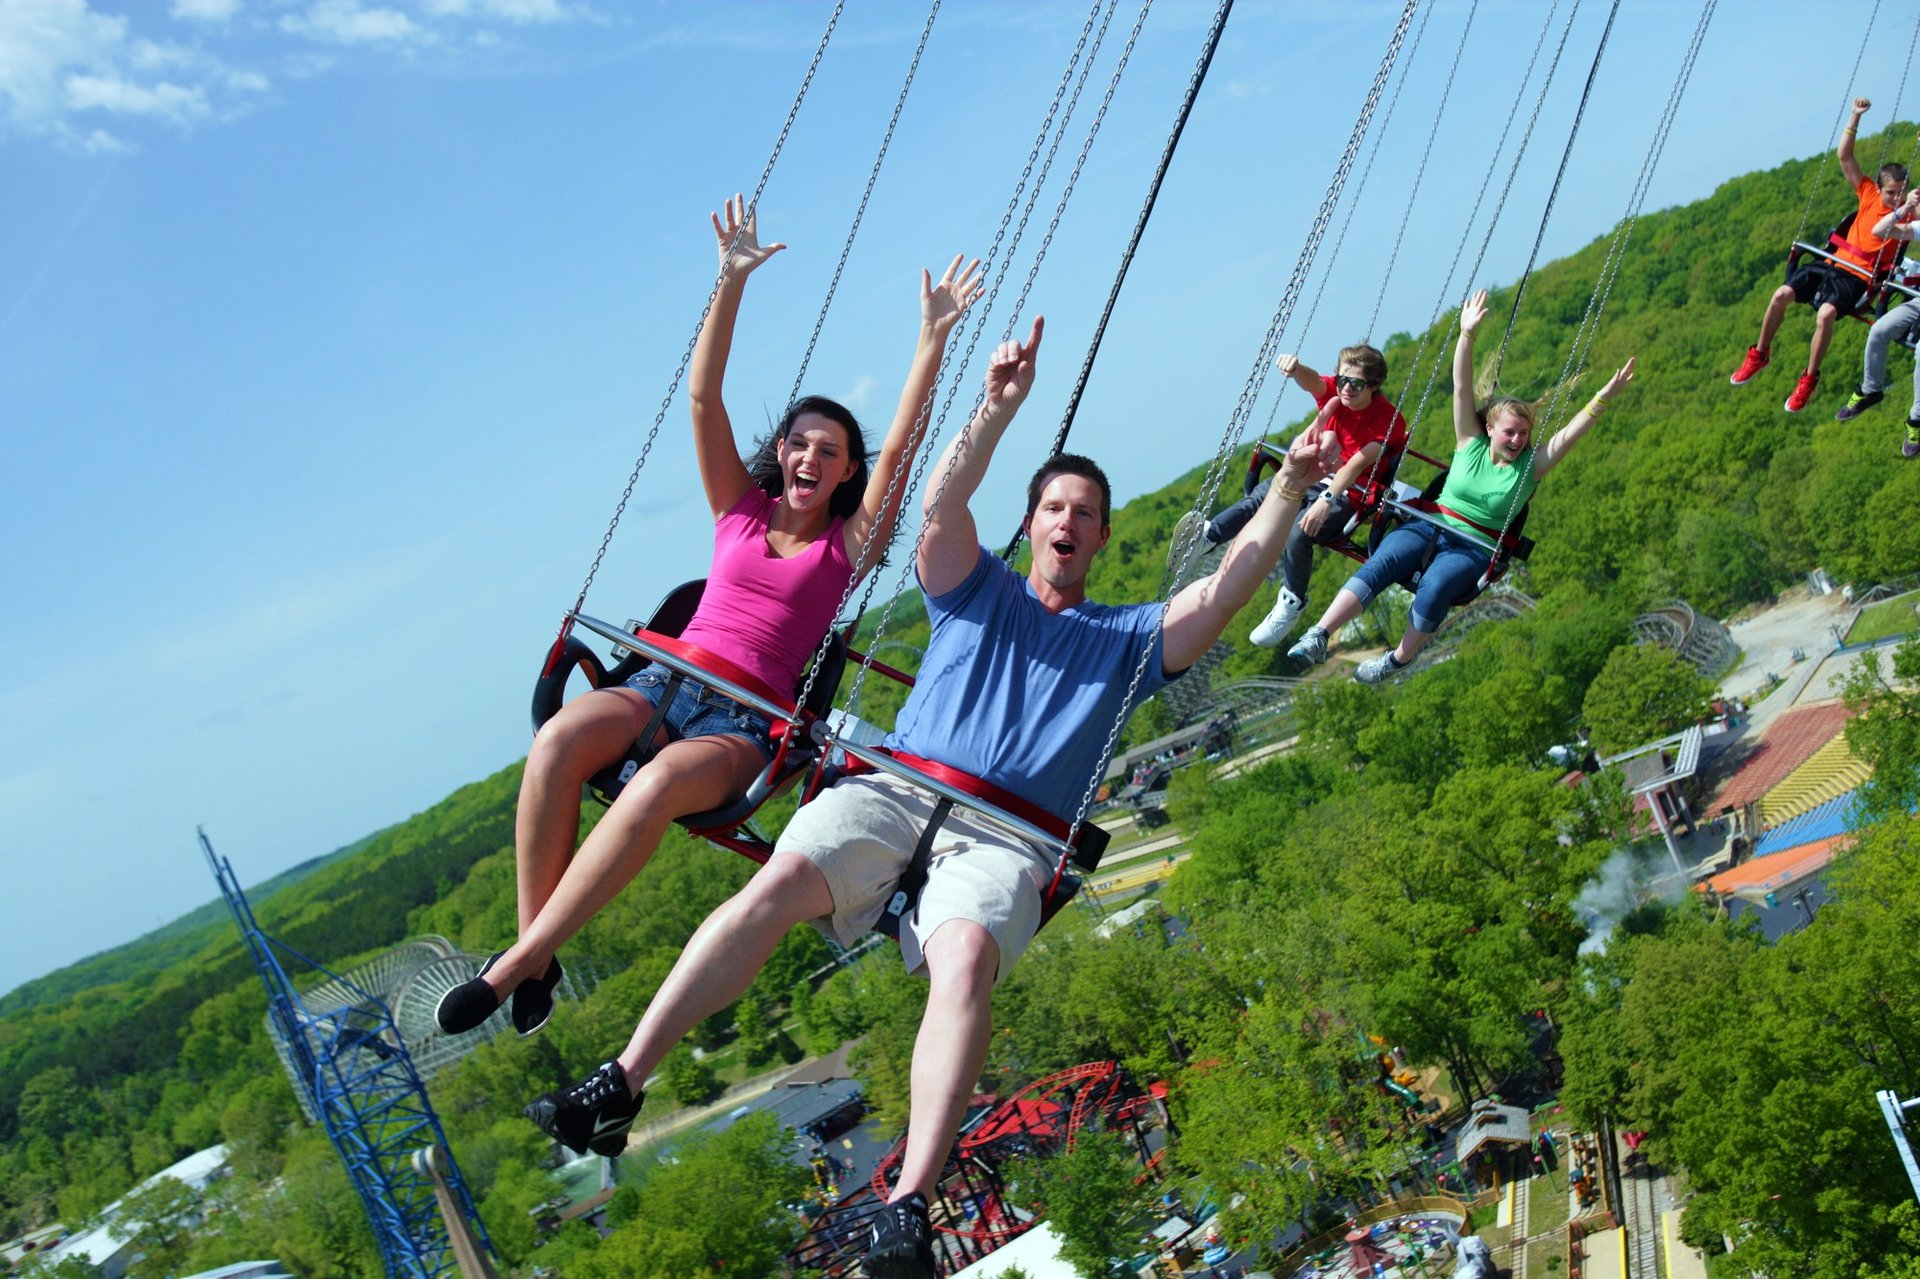 Guests on SkyScreamer at Six Flags